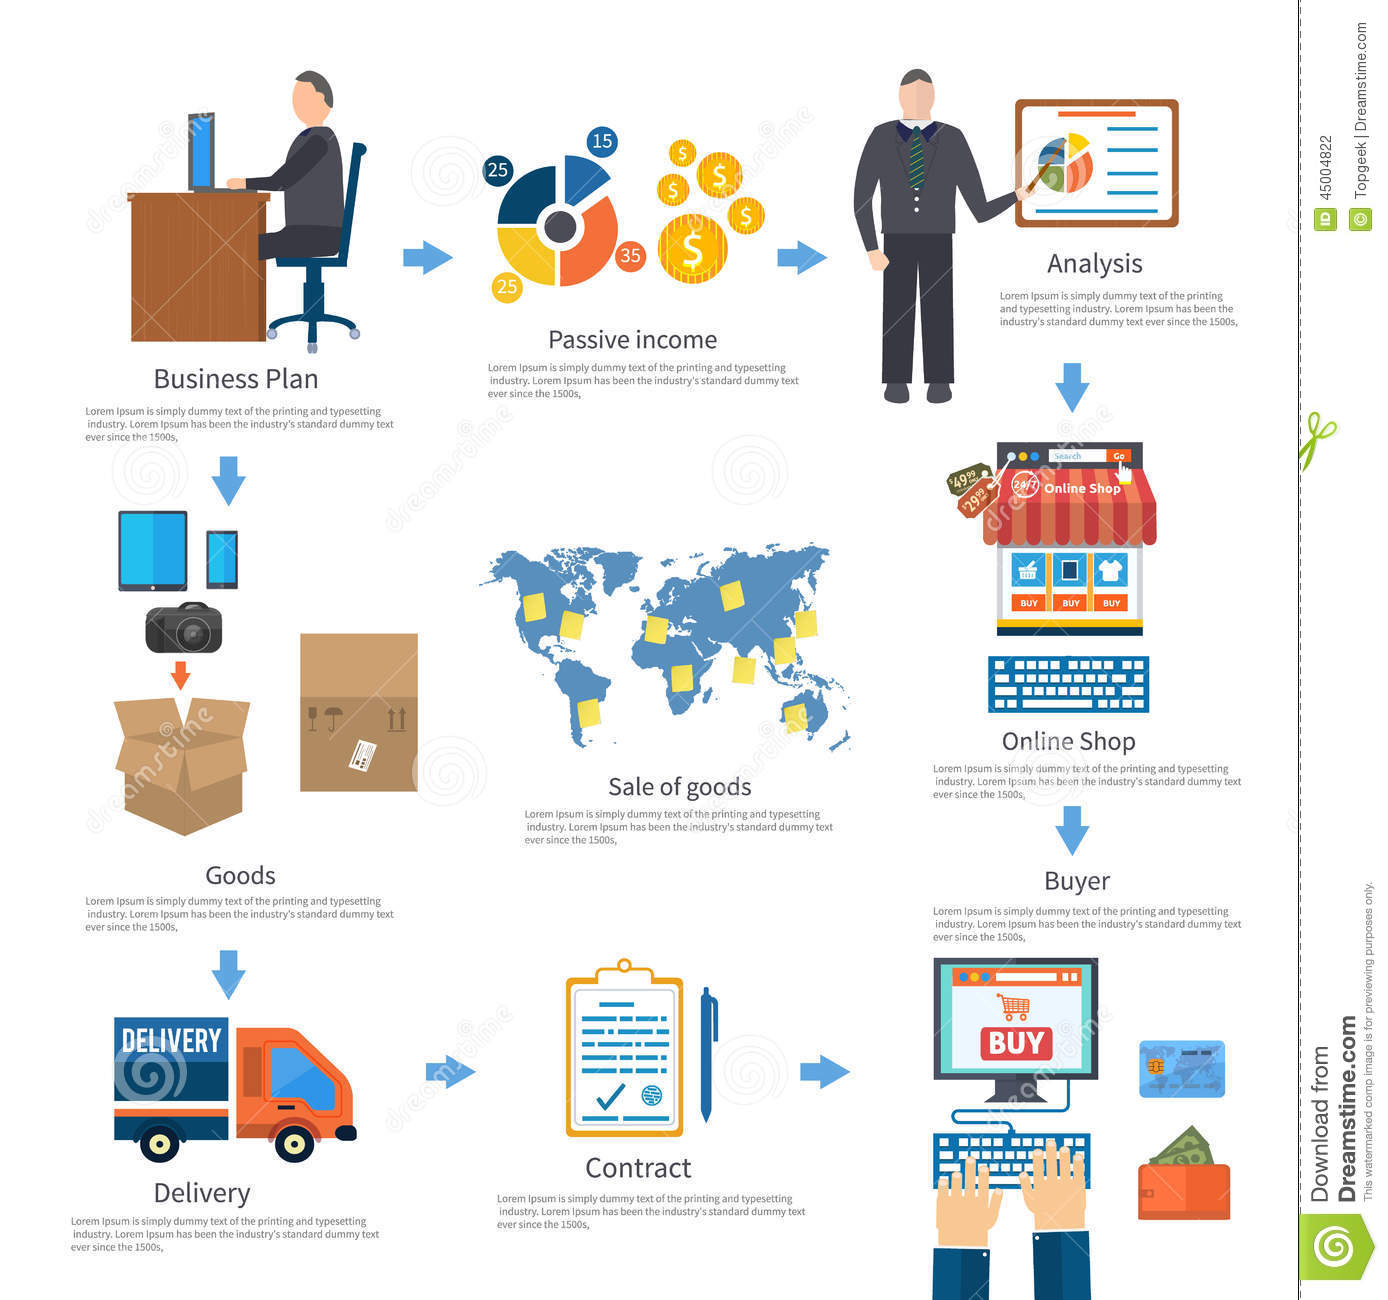 walmart decision making process The process by which businesses make decisions is as complex as the processes which characterize consumer decision-making business draws upon microeconomic data to make a variety of critical.